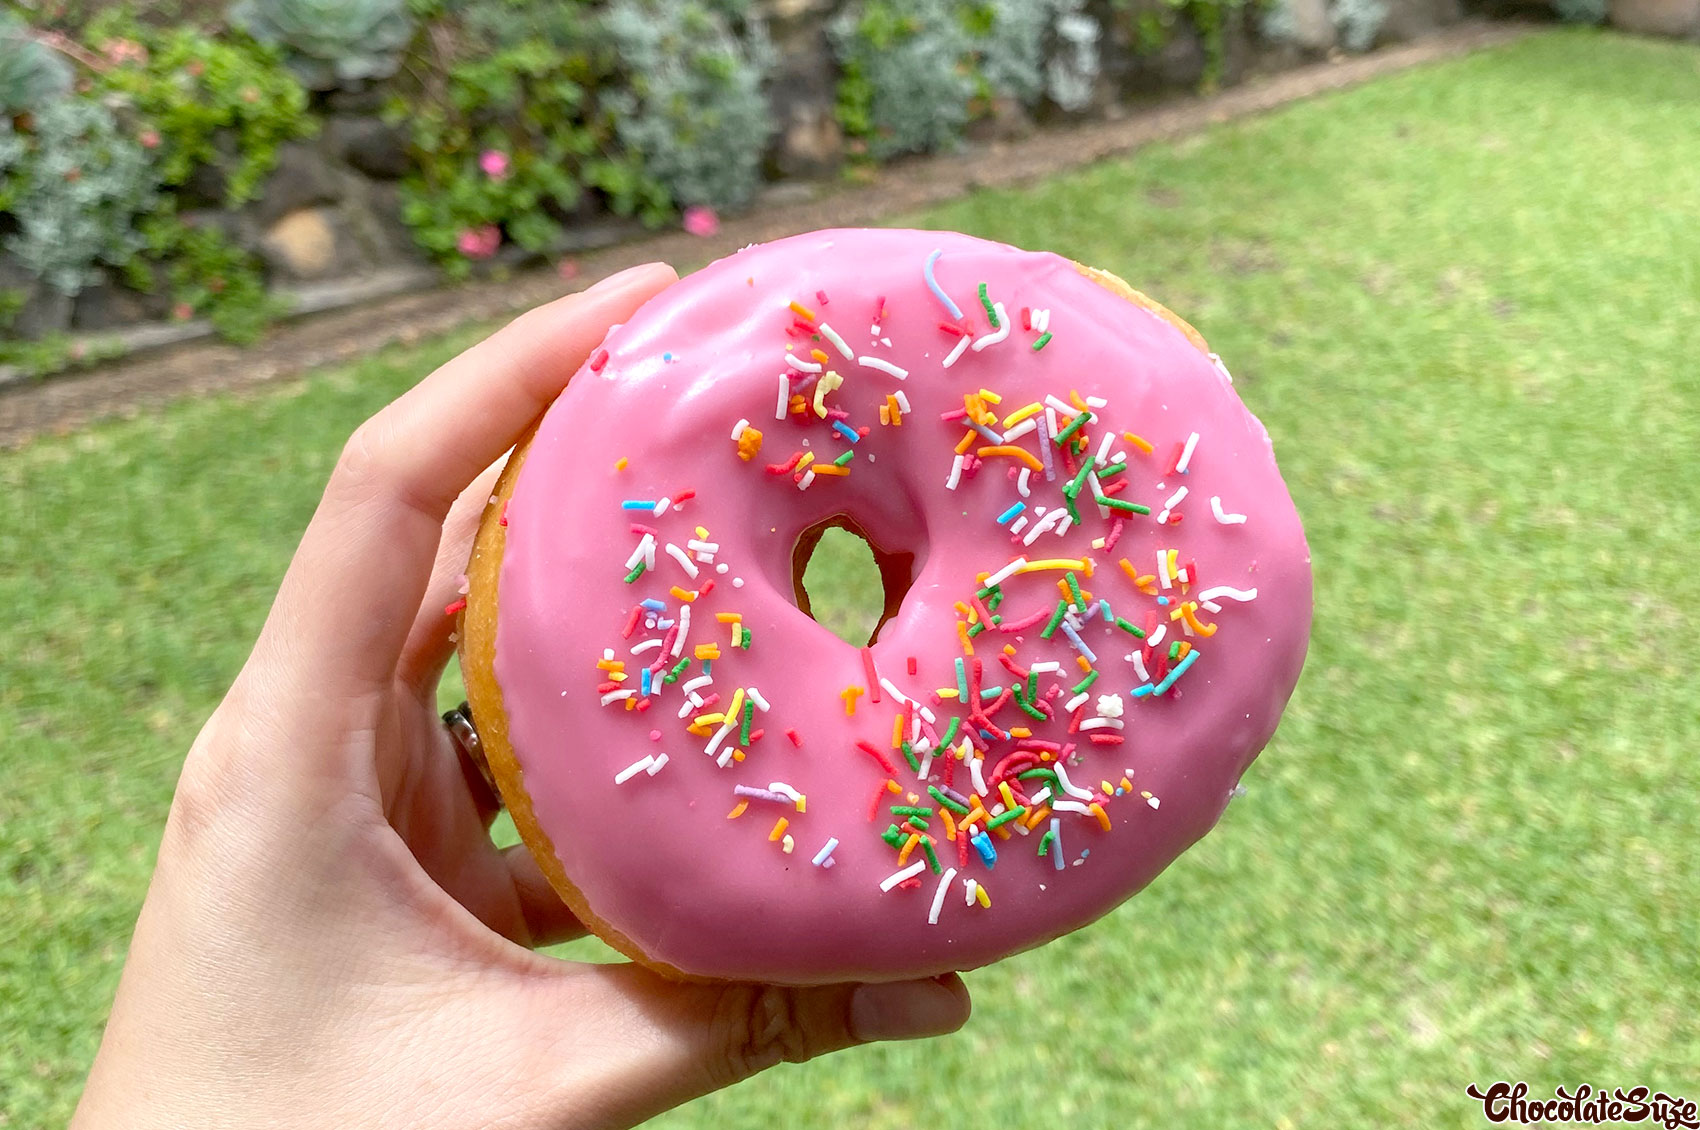 Homer Simpson donut at L.A Donuts, Beverly Hills